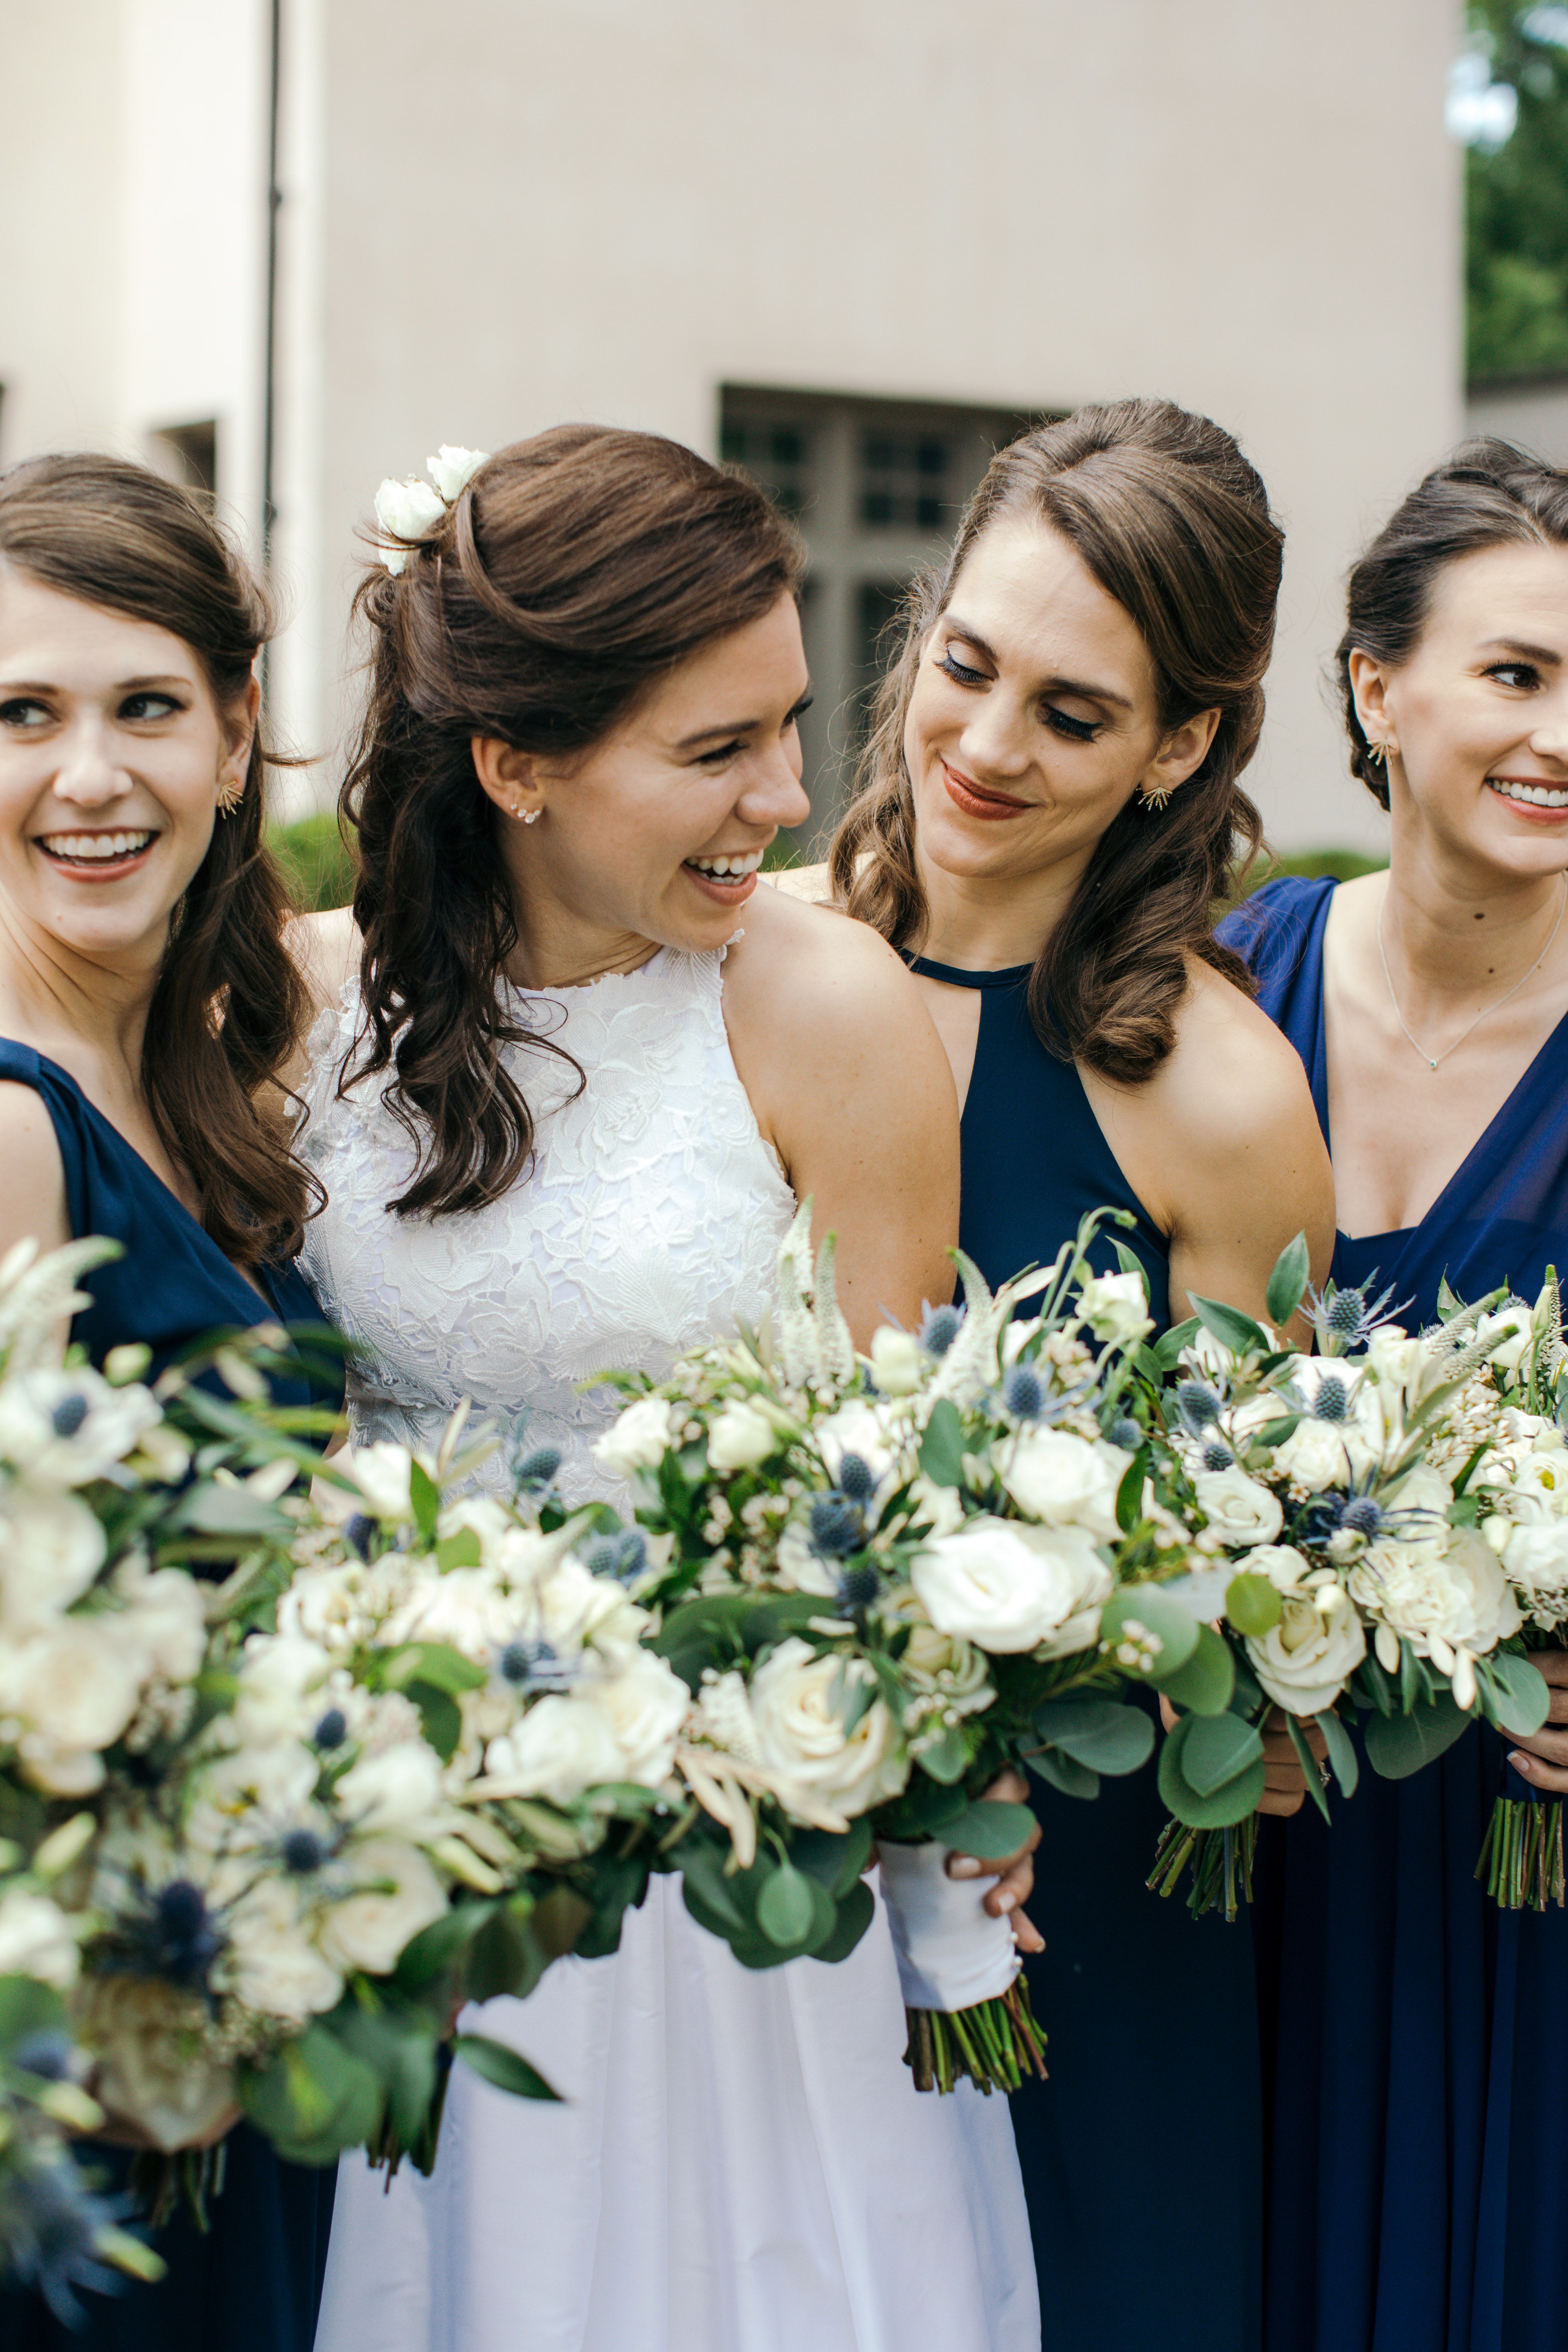 Pin by Events of a Lifetime on Southern Catholic Wedding